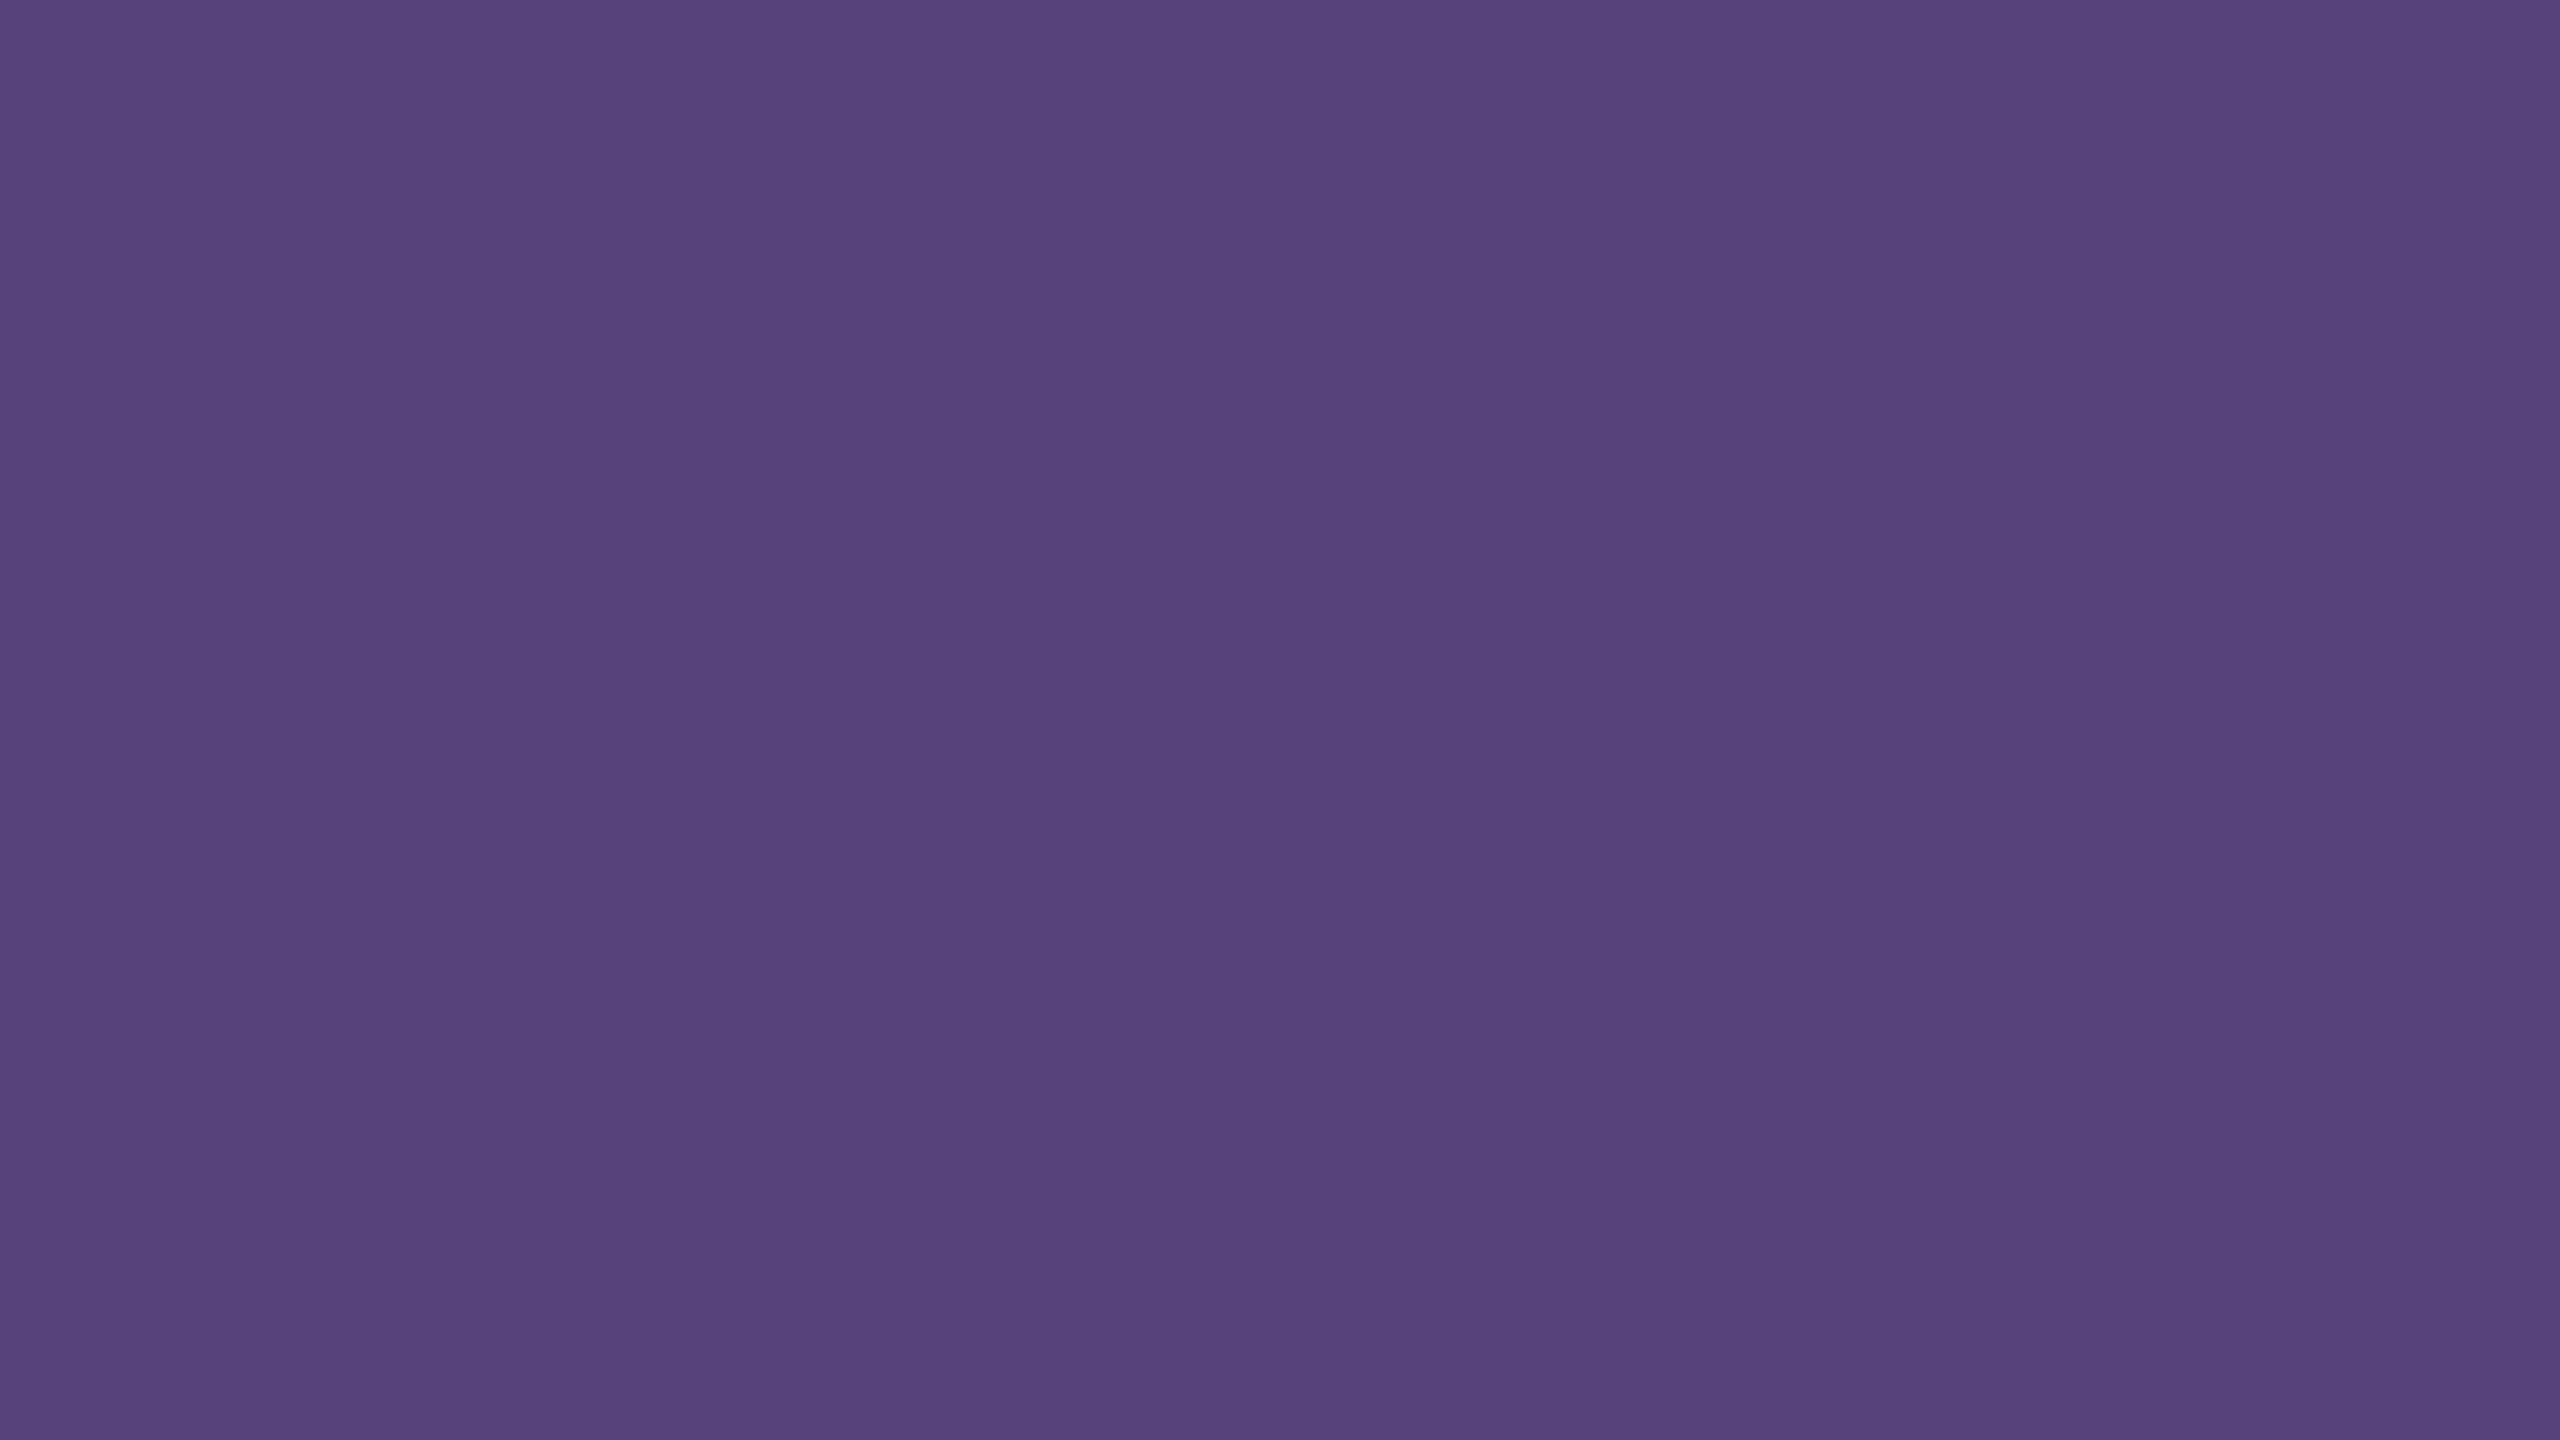 2560x1440 Cyber Grape Solid Color Background